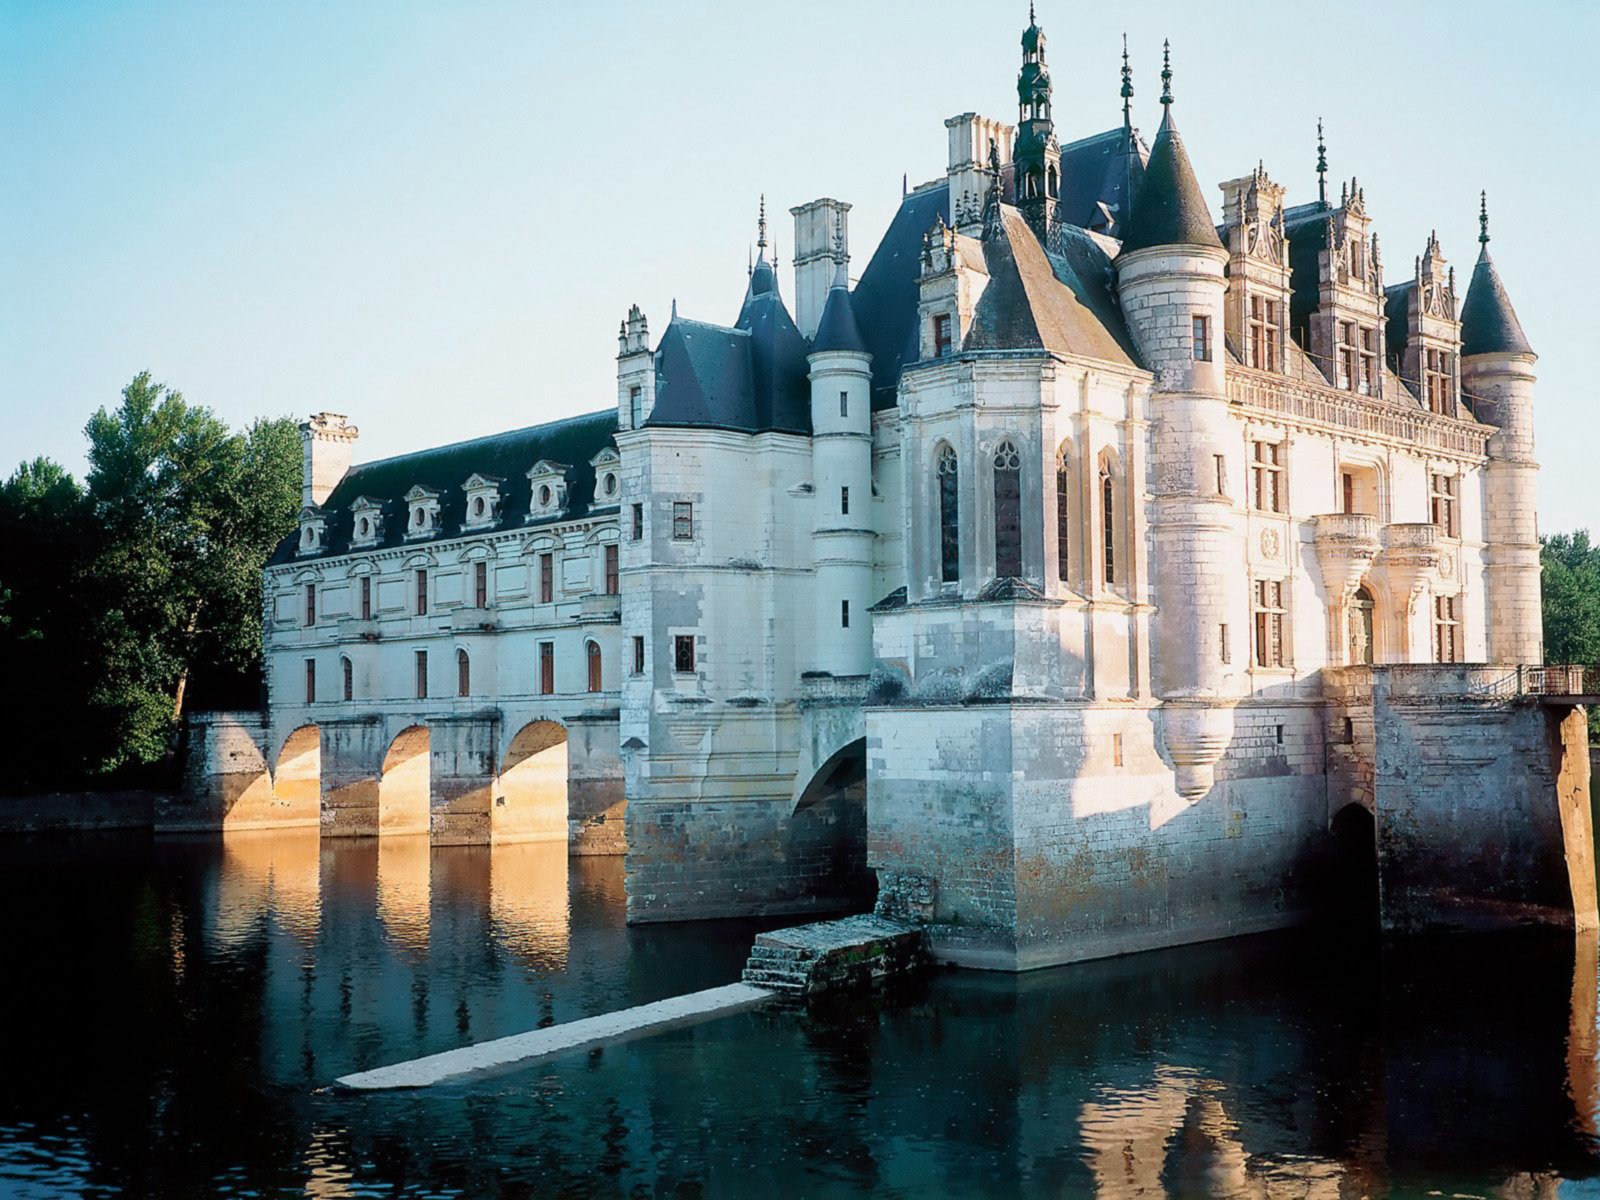 Chenonceaux Castle France Wallpapers HD Wallpapers 1600x1200